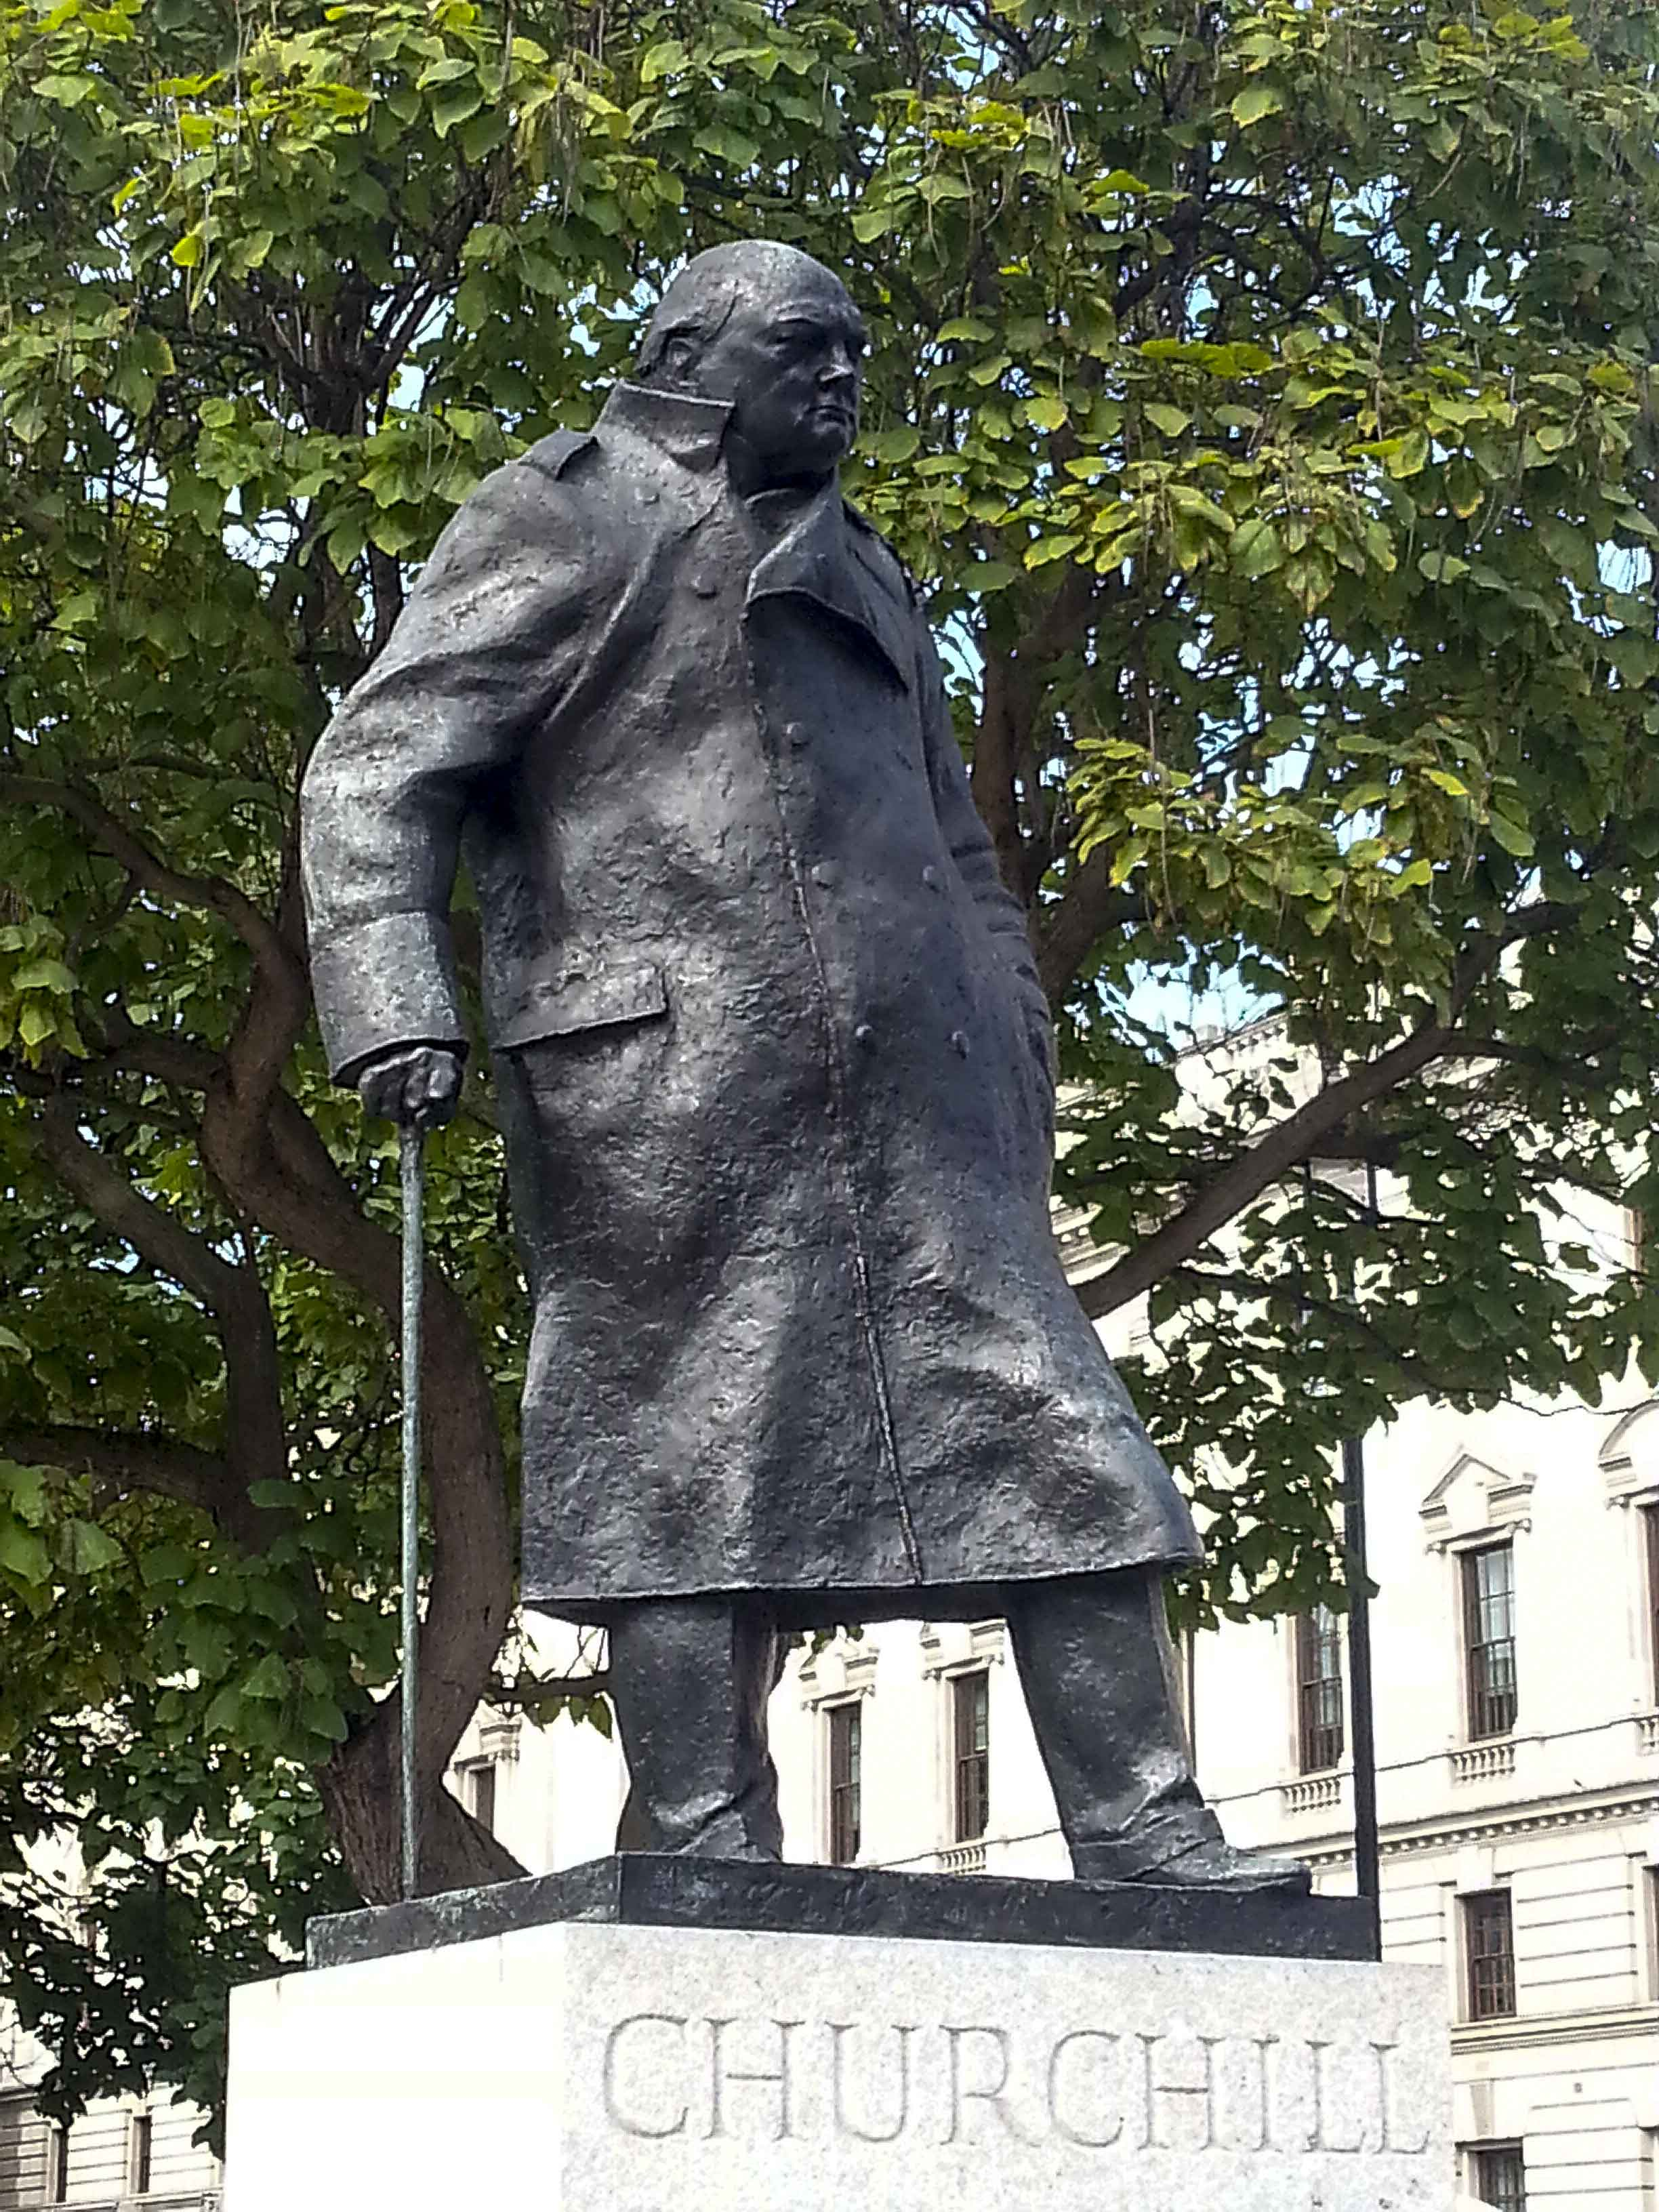 CHURCHILL (1 of 1)